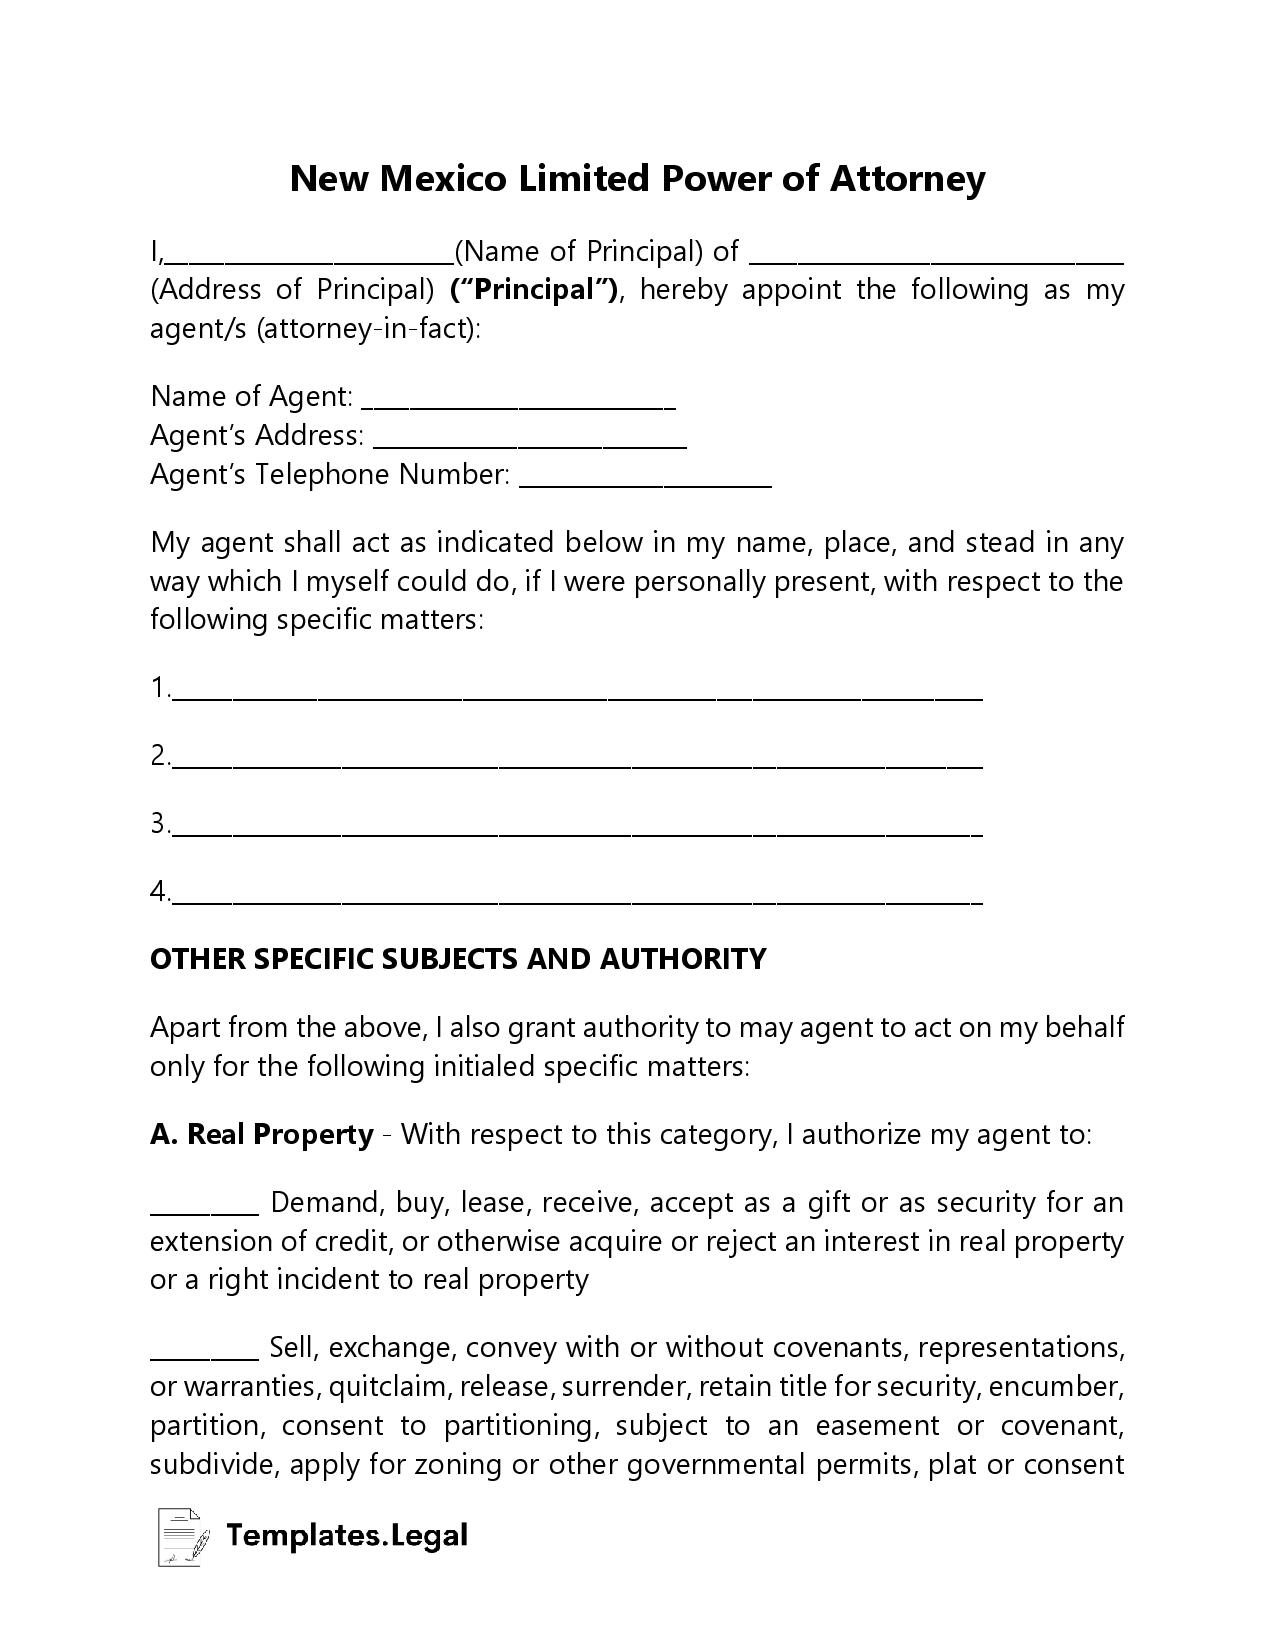 New Mexico Limited Power of Attorney - Templates.Legal